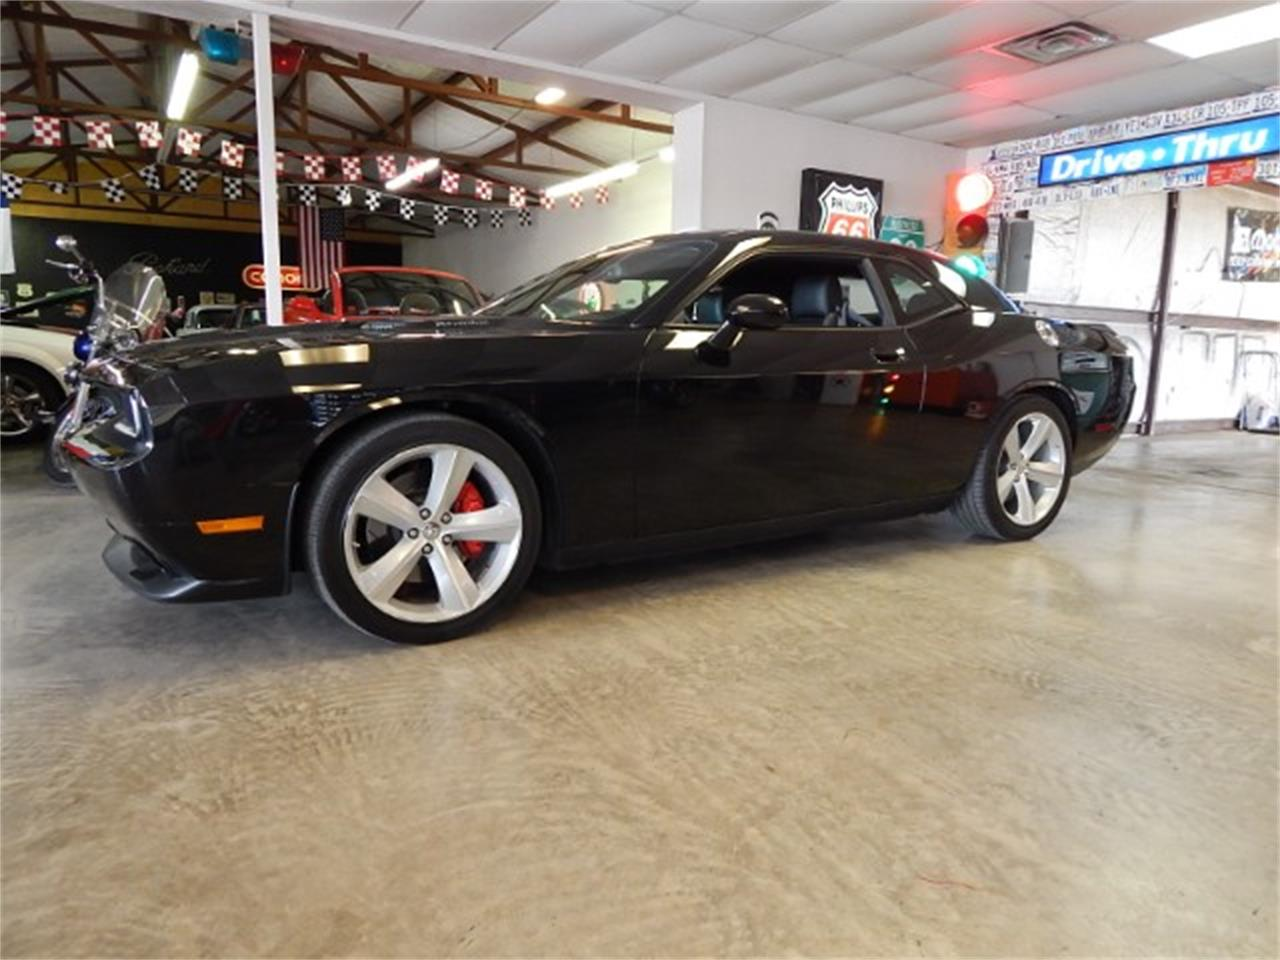 2008 Dodge Challenger for sale in Wichita Falls, TX – photo 15